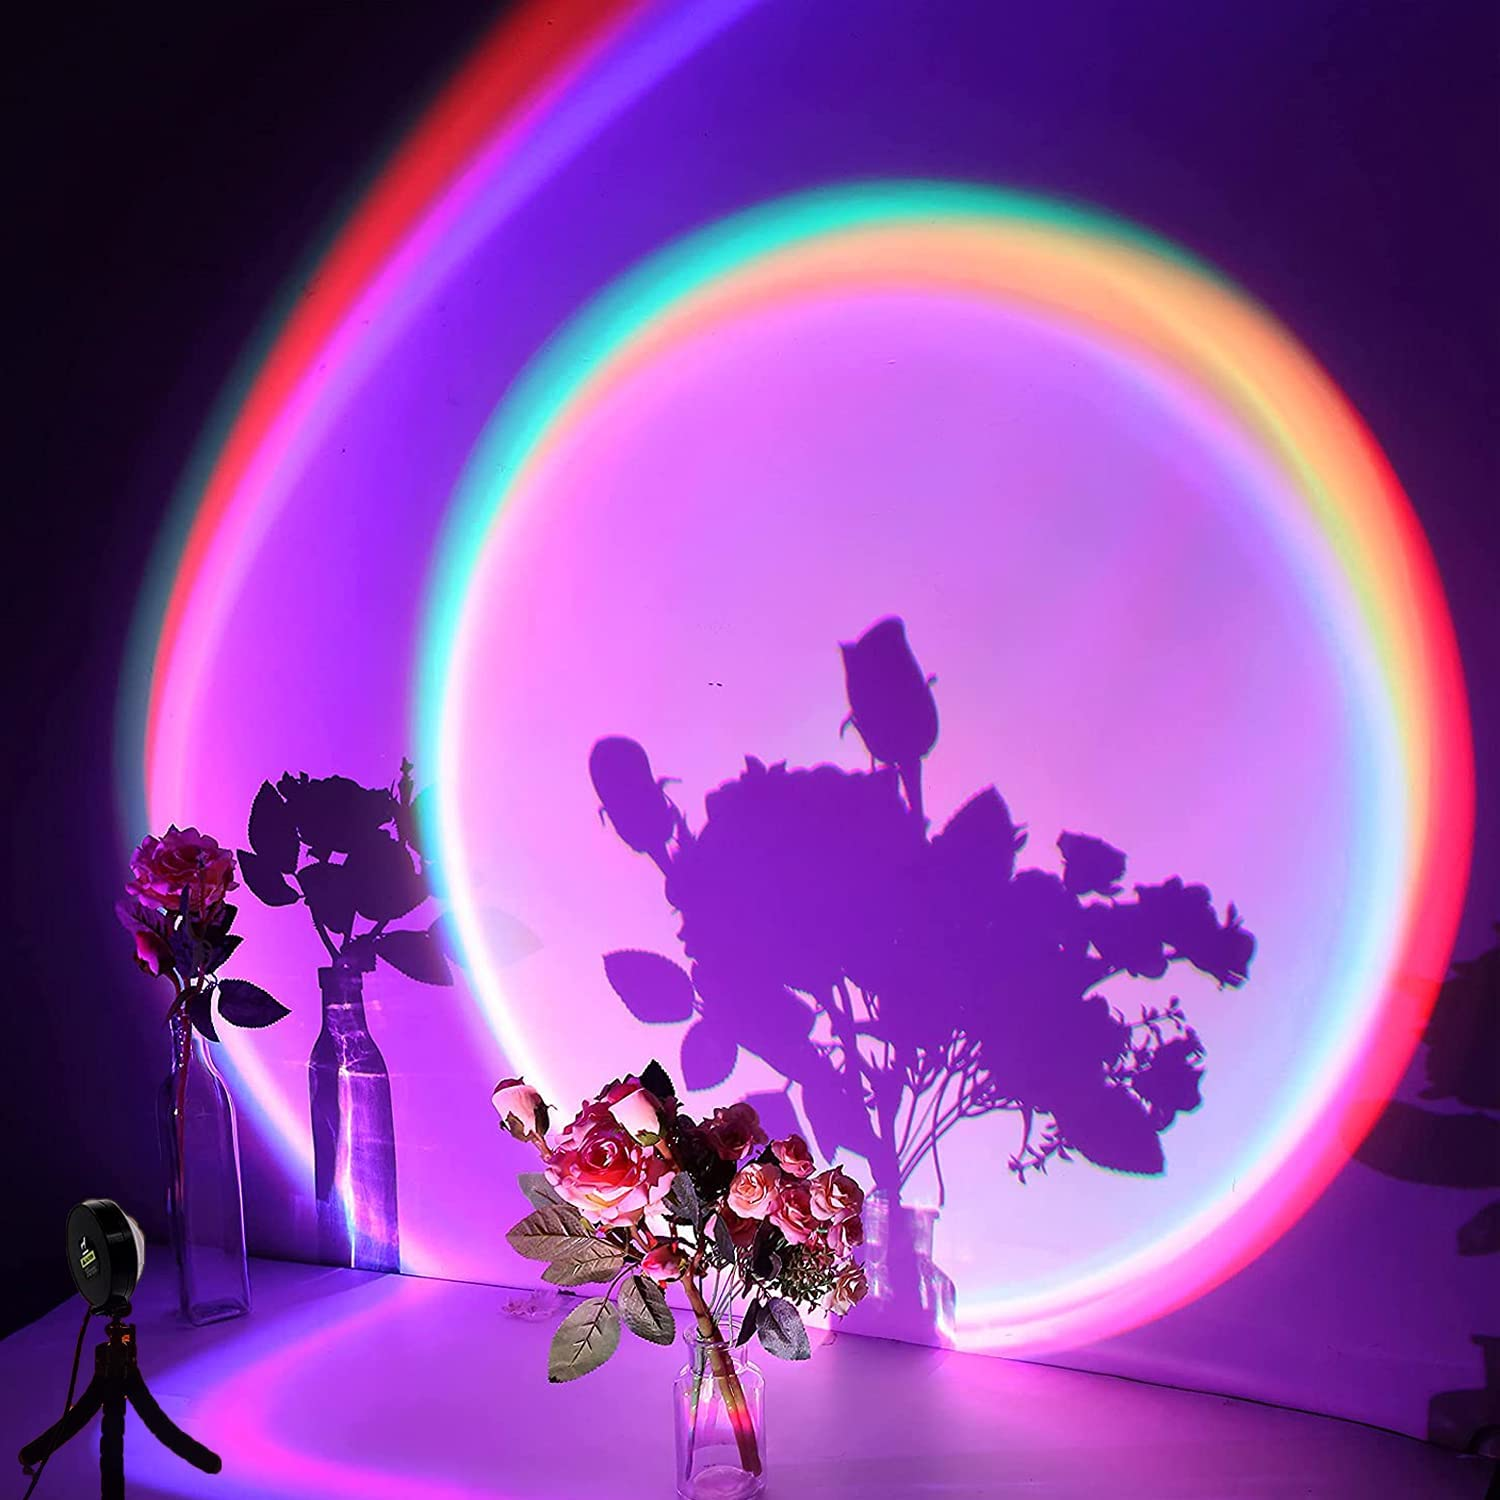 Sunset Projector, LED Rainbow Projection Light USB Sunset Lamp Projector Romantic Visual LED Light with 16 Colors Modern Floor Stand Night Light Decor for Home Party Living Room Bedroom